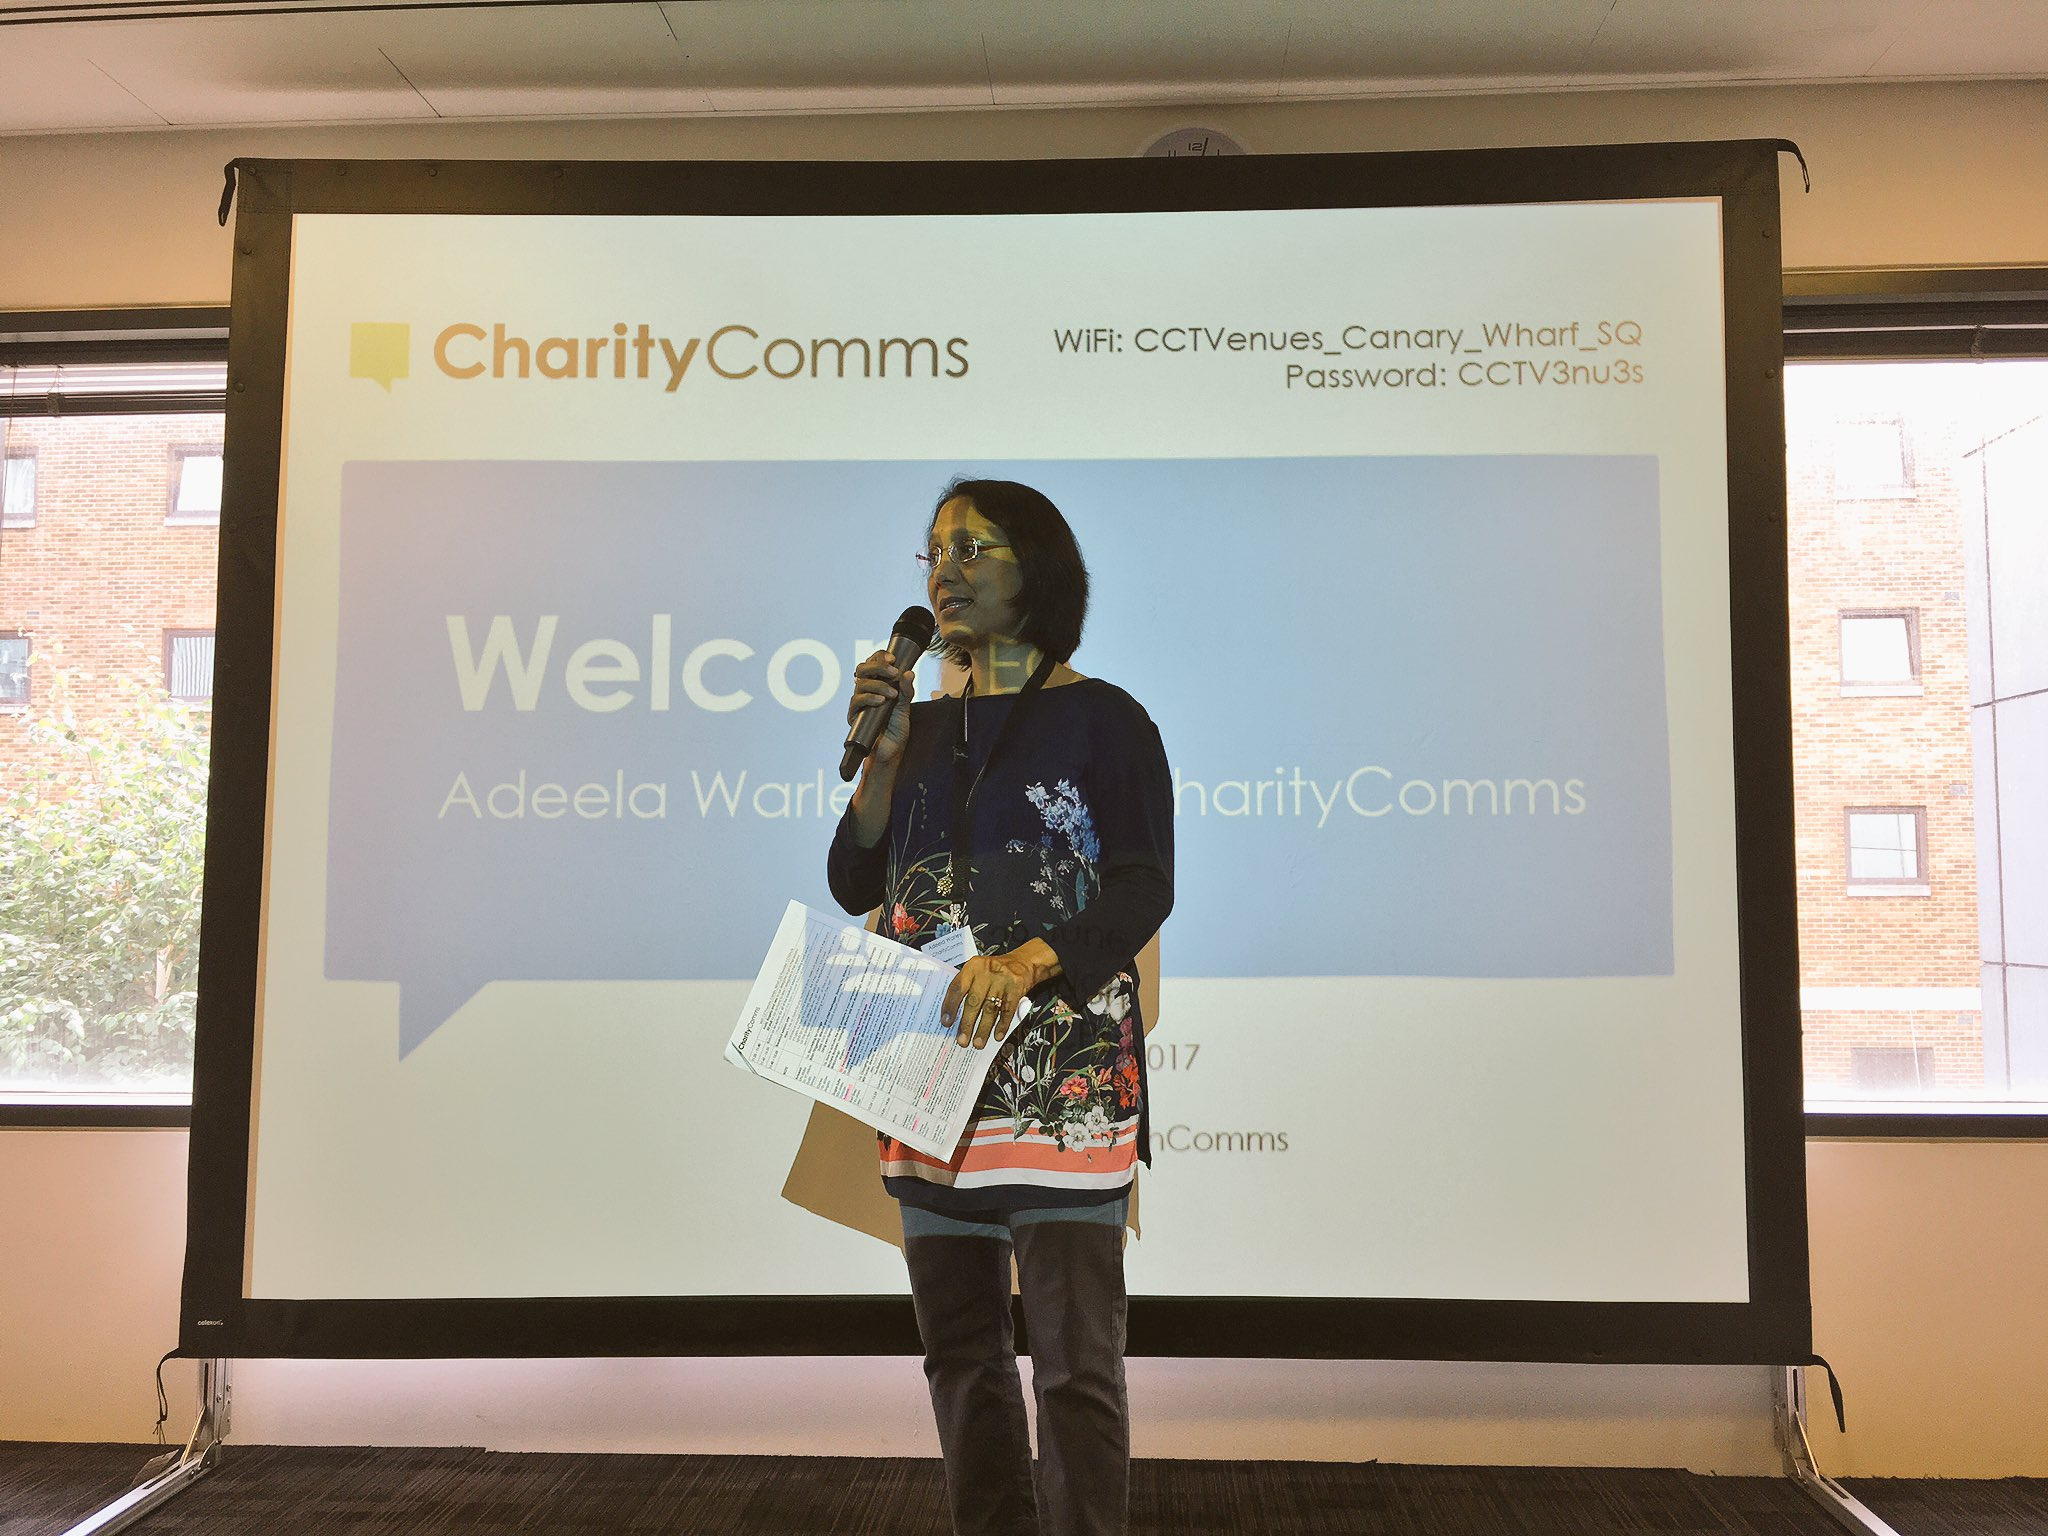 We're kicking off our #CCPsychComms conference with a welcome from our CEO, @adeelawarley https://t.co/J6eev8eu8g